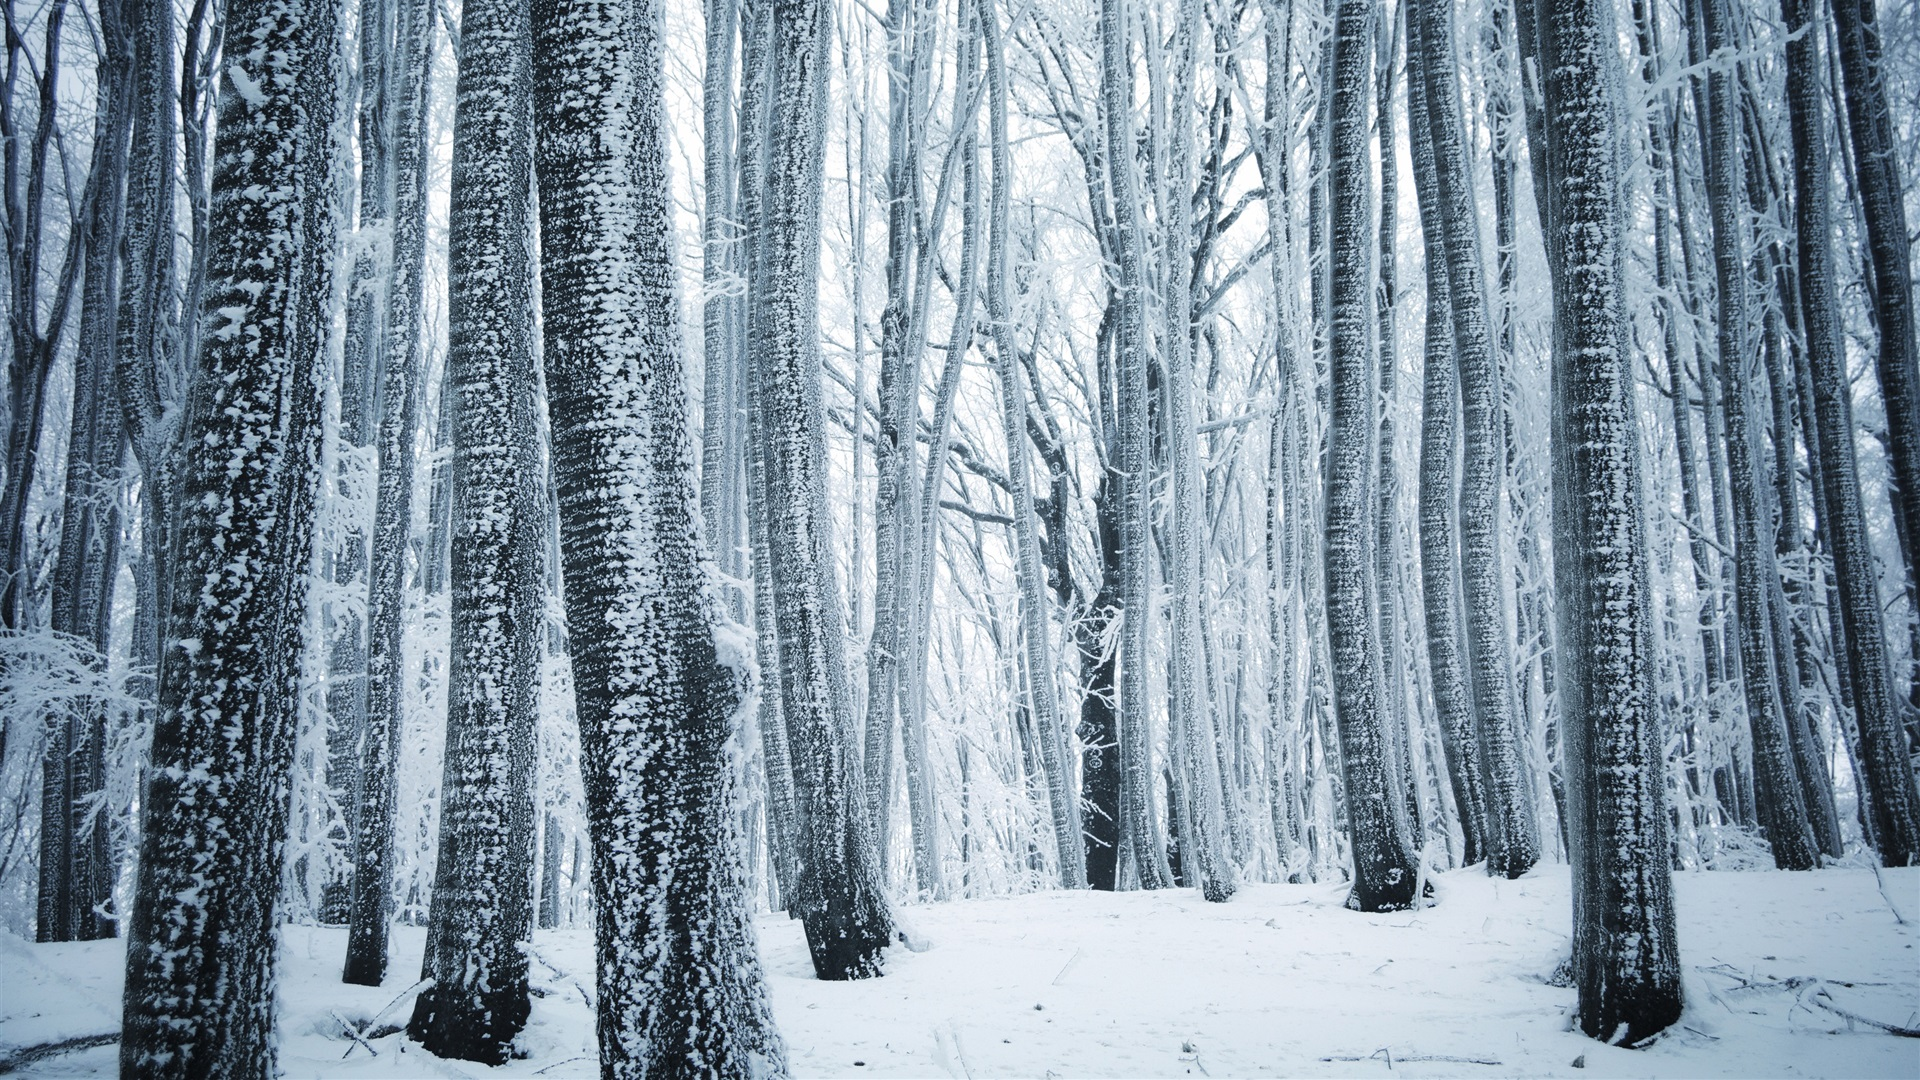 Iphone 5s Stock Wallpaper Wallpaper Winter Forest Trees White Snow 3840x2160 Uhd